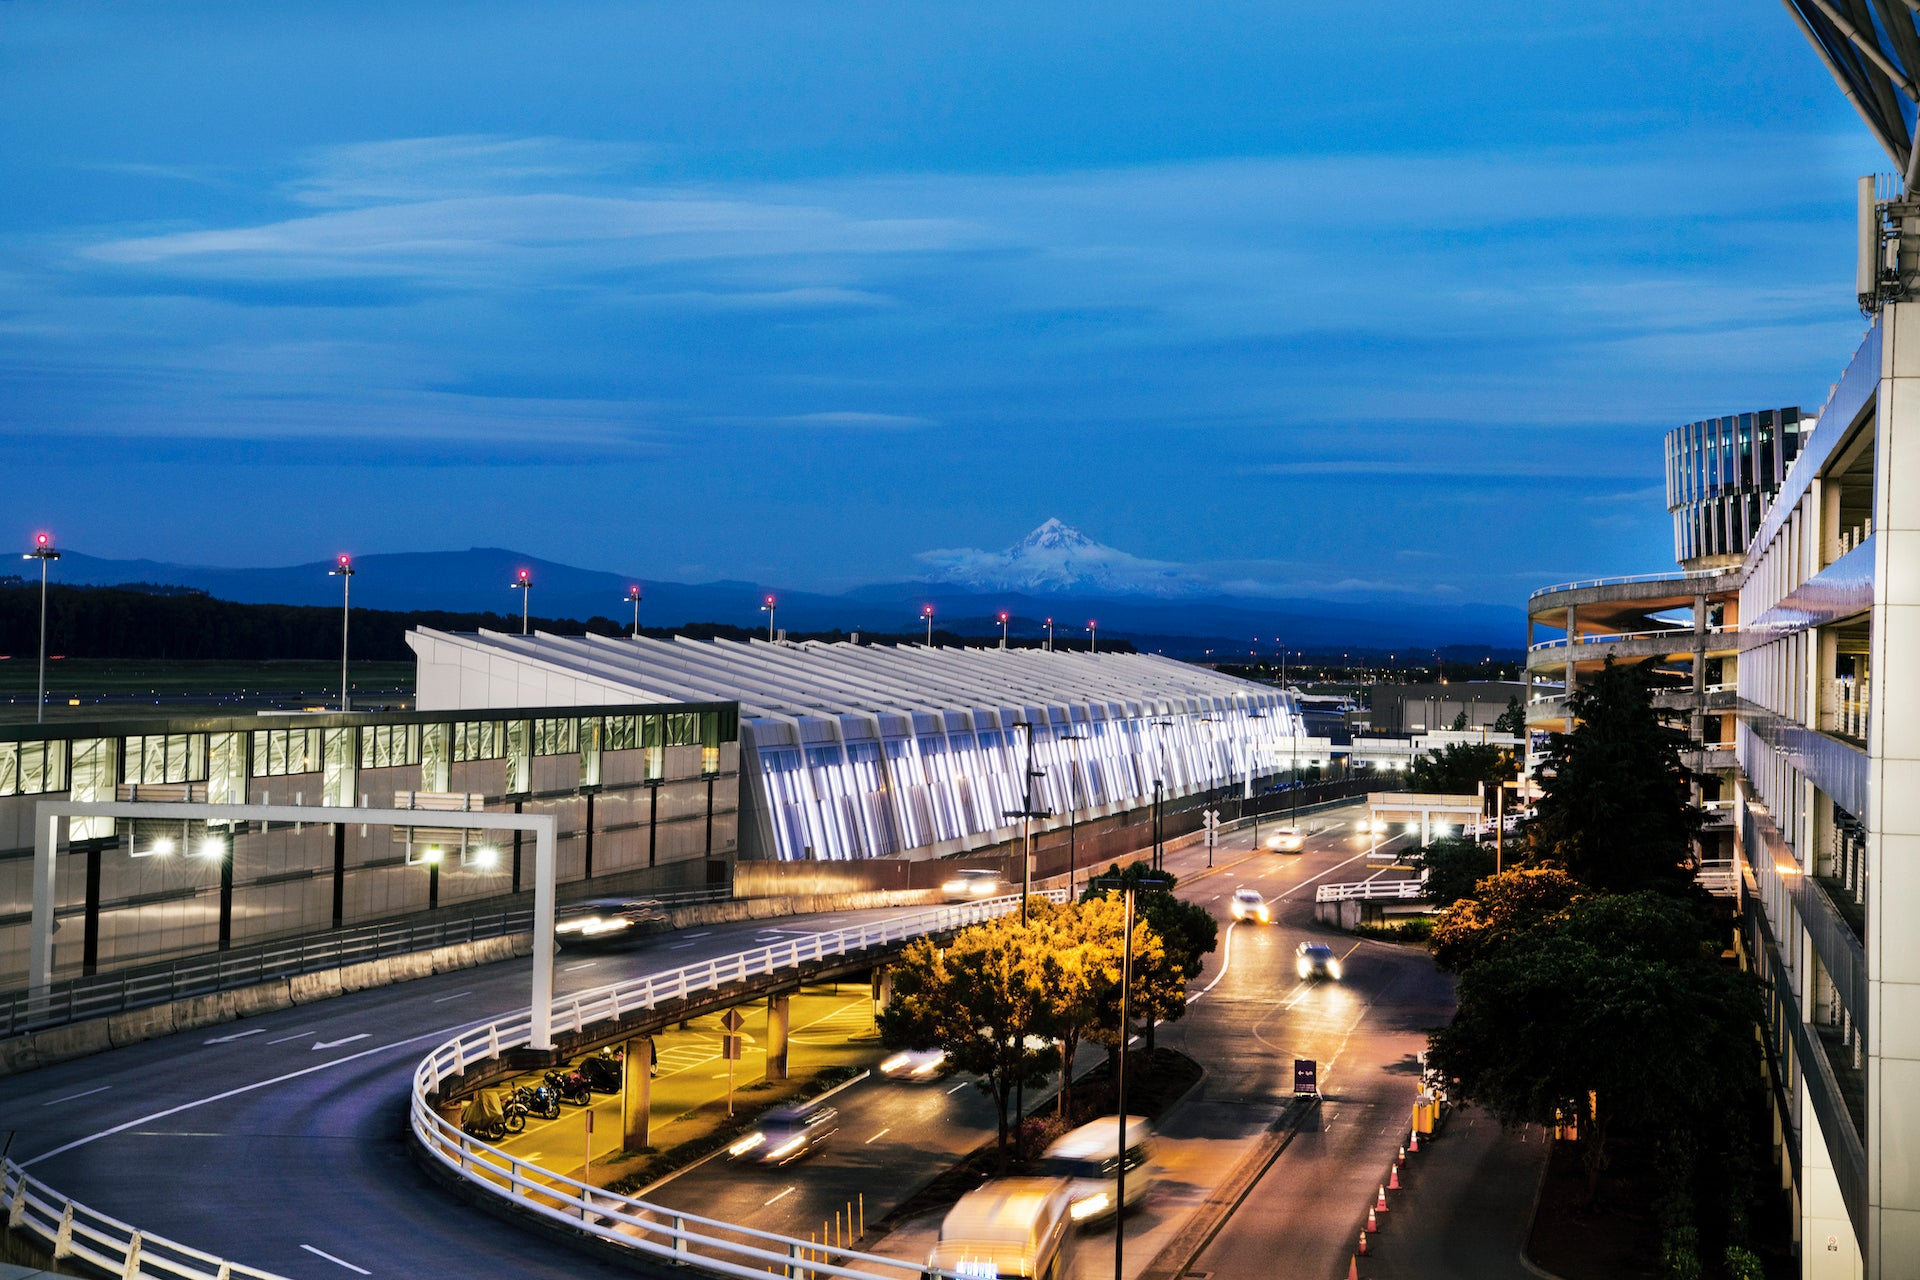 Southwest Airlines inaugurates a new 'very Portland' concourse at PDX